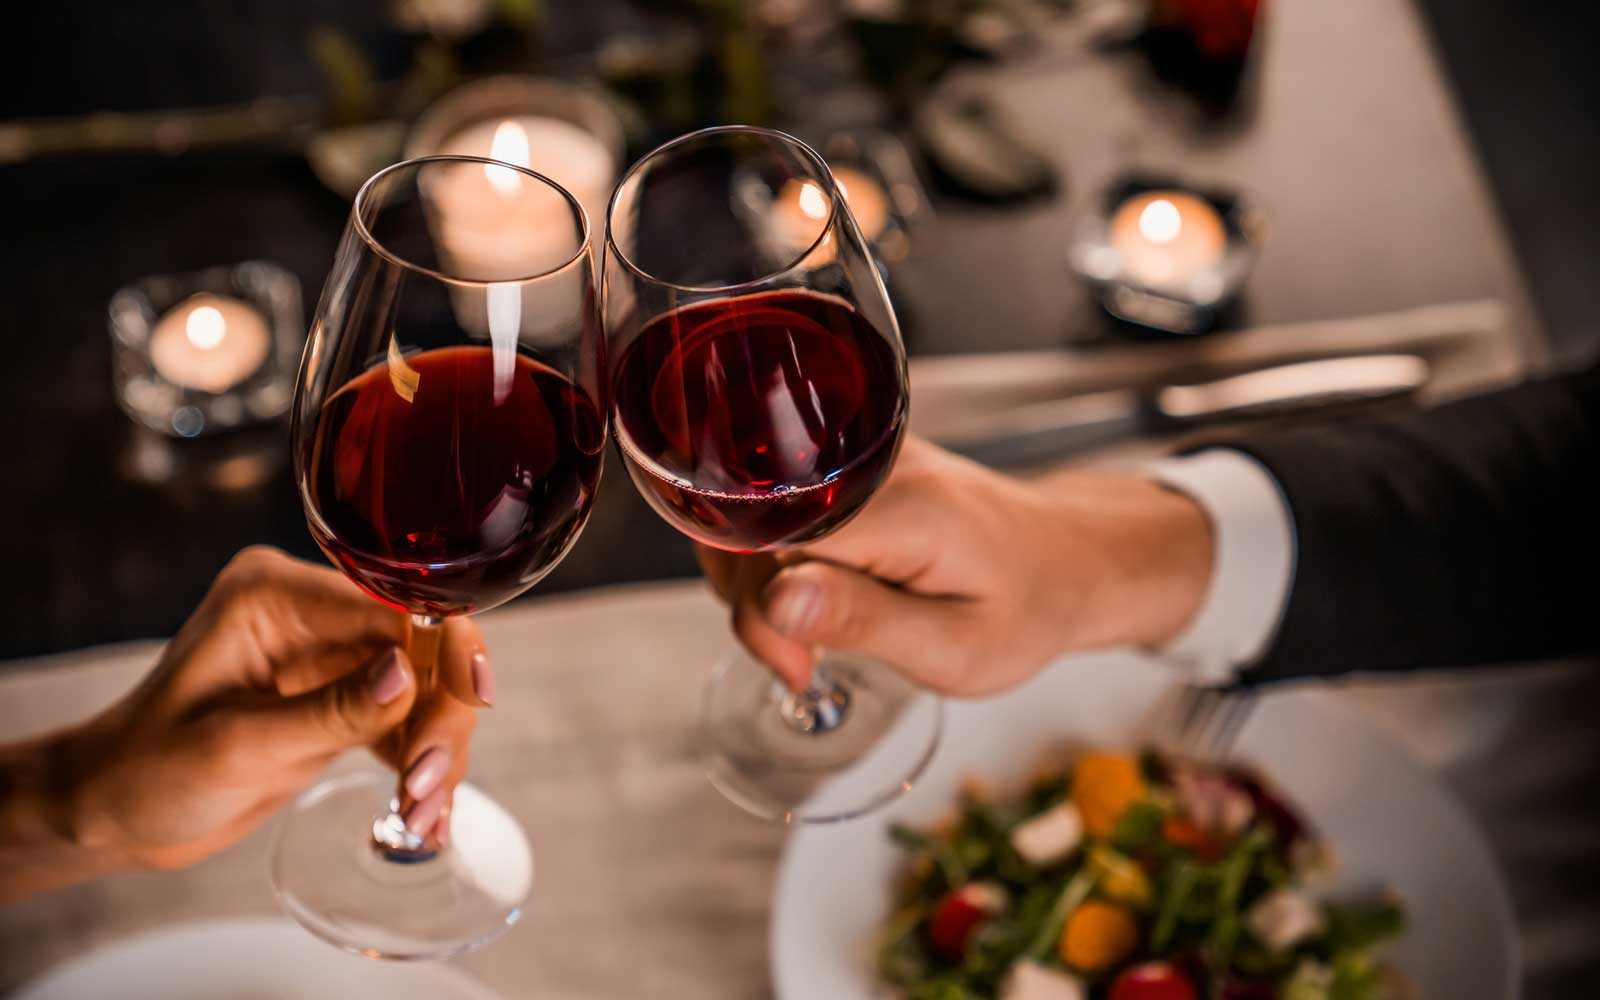 Close up of couple toasting with glasses of red wine at restaurant